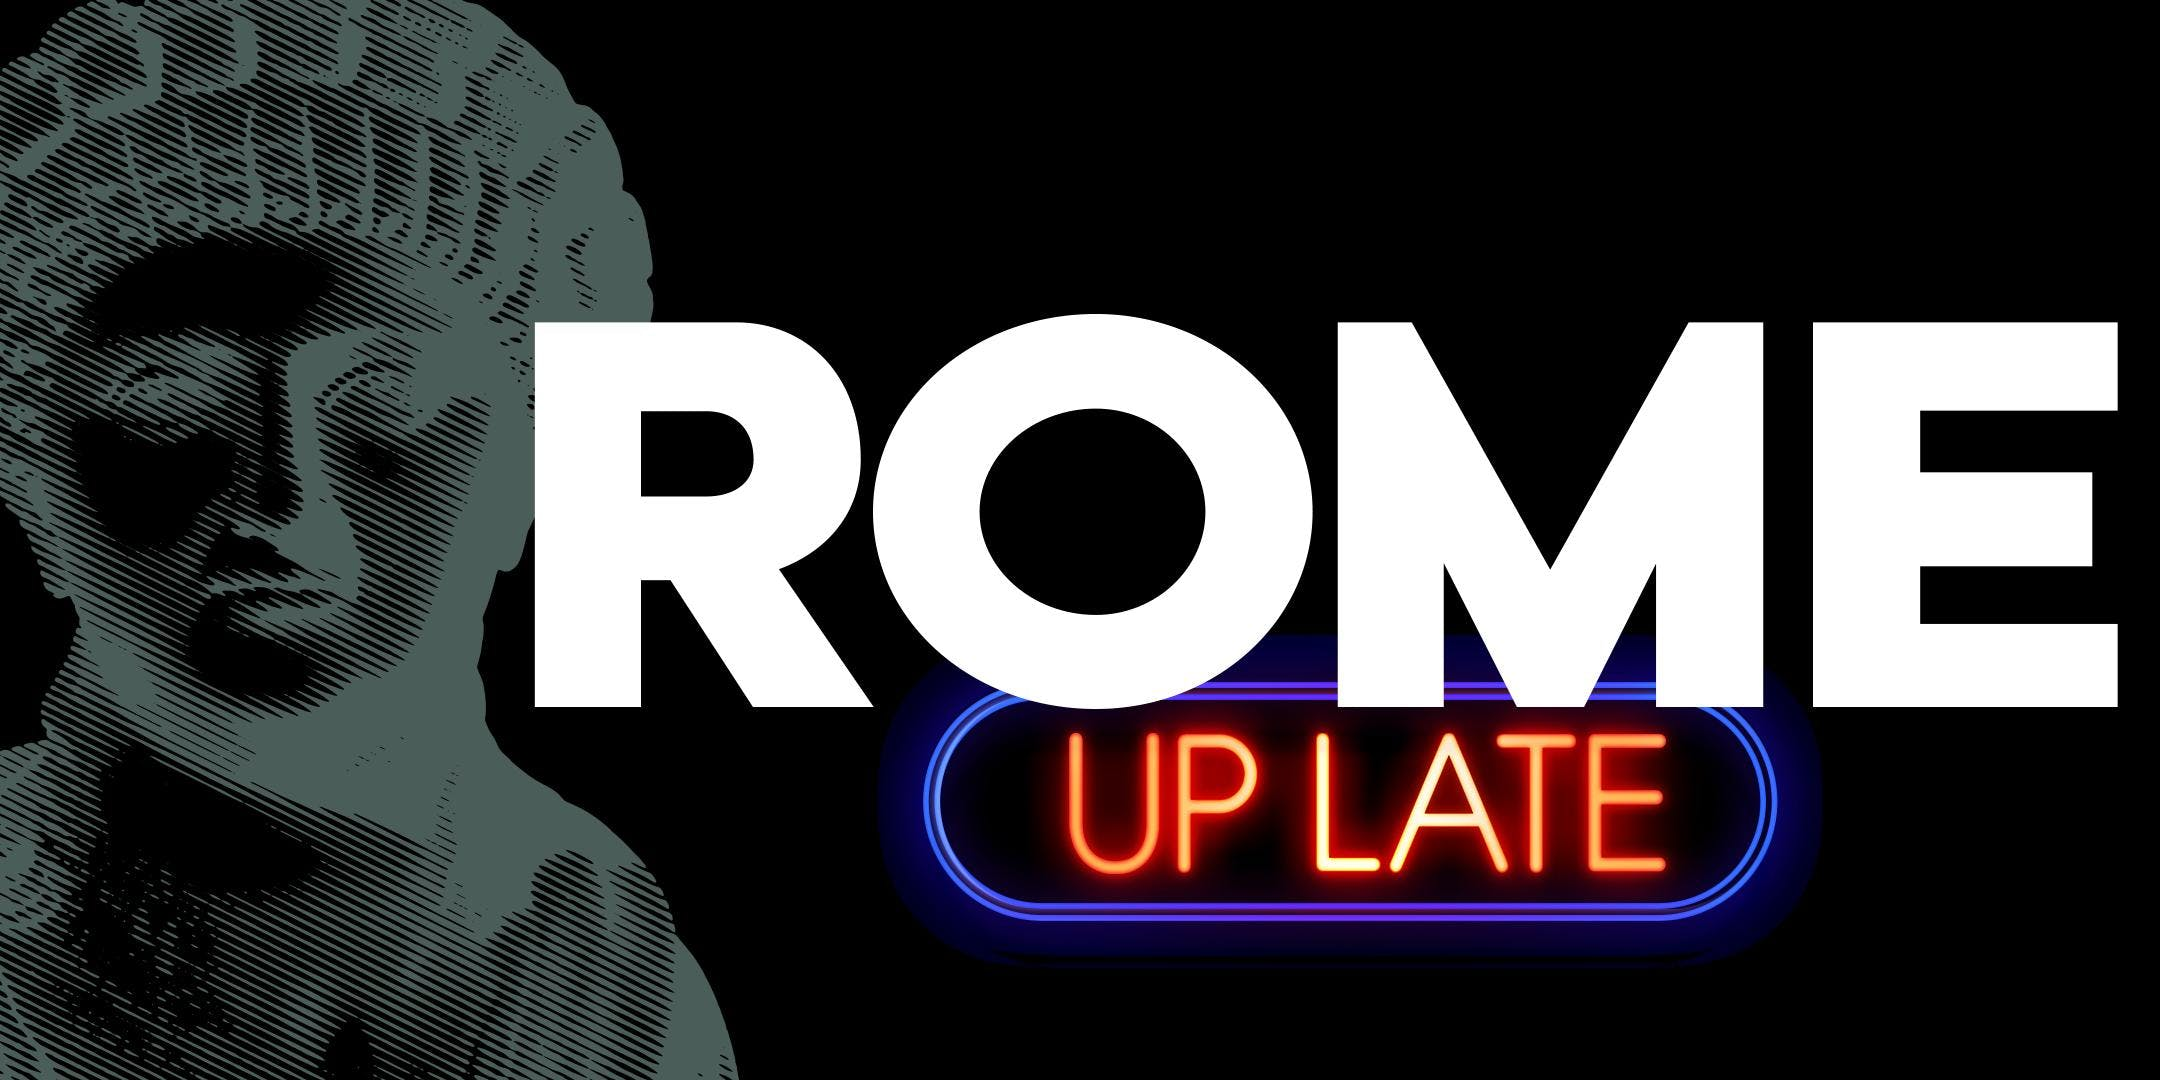 Rome up late